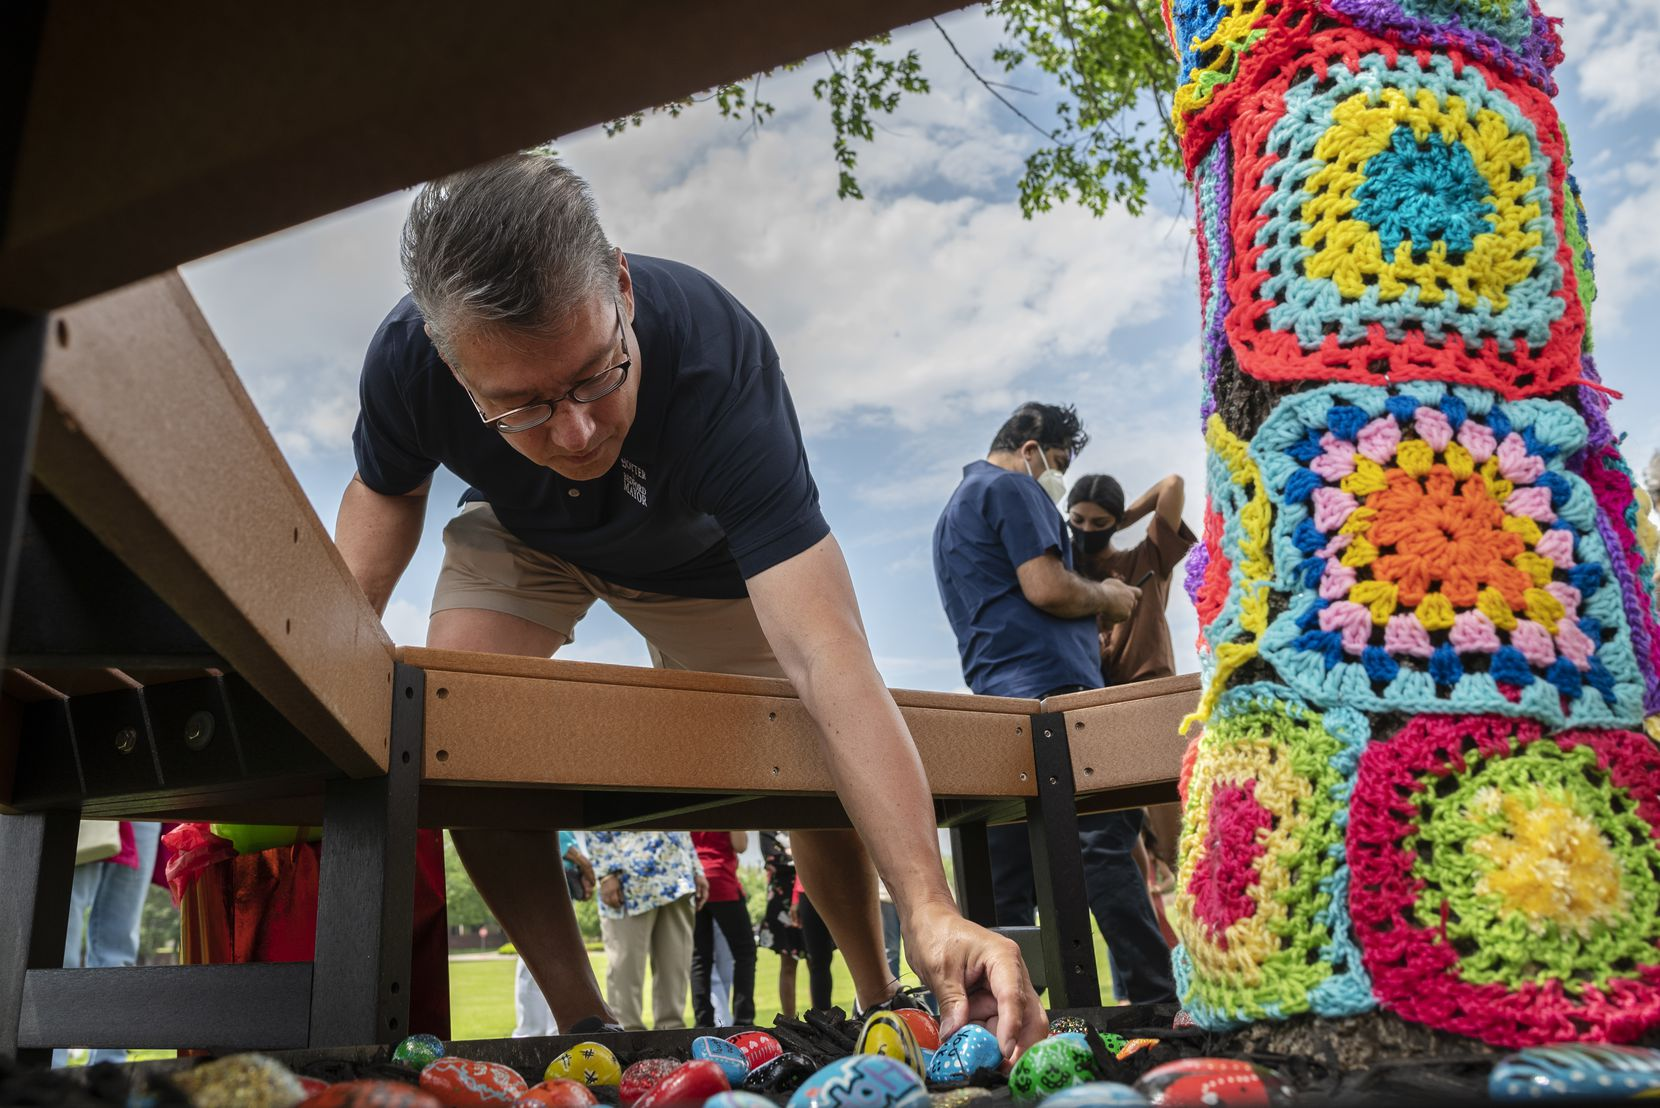 Bedford Mayor Michael Boyter places a painted rock with a positive message written on it at the base of Anya Ali's Girl Scout project outside of the Bedford Public Library.